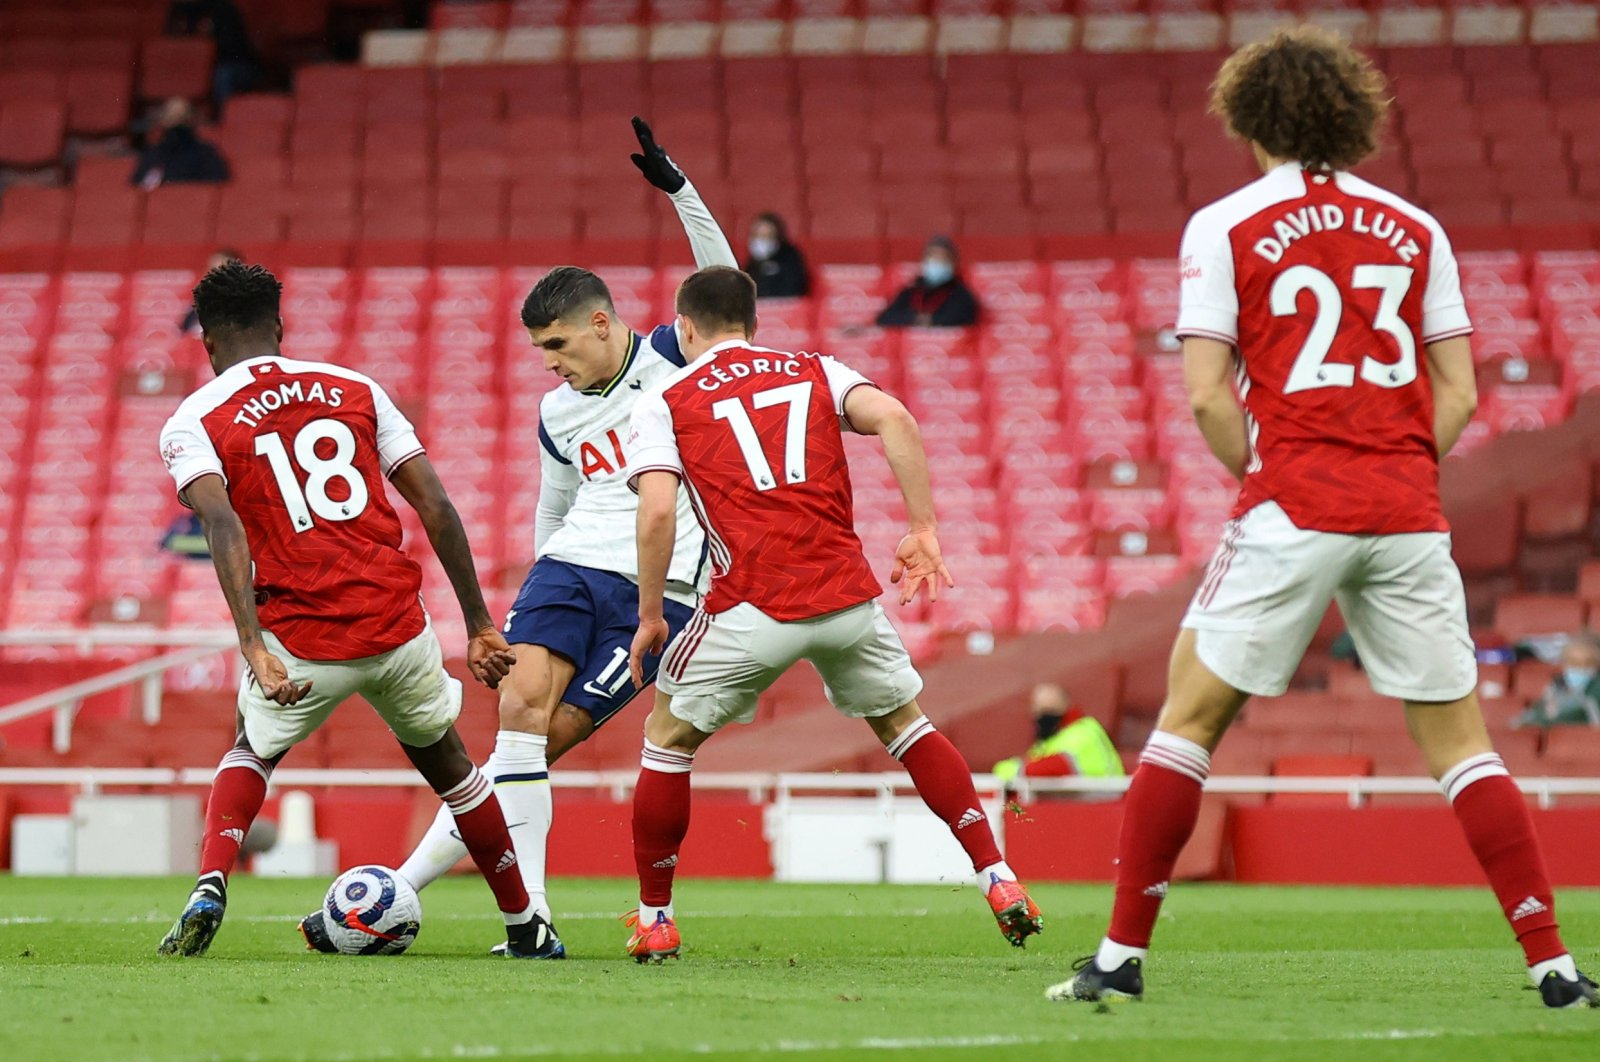 Tottenham Hotspur's Erik Lamela scores his team's first goal with a sumptuous Rabona flick,in a match they ended up losing 2-1at the Emirates Stadium against bitter rivals Arsenal,London, U.K., March 14, 2021. (Reuters Photo)